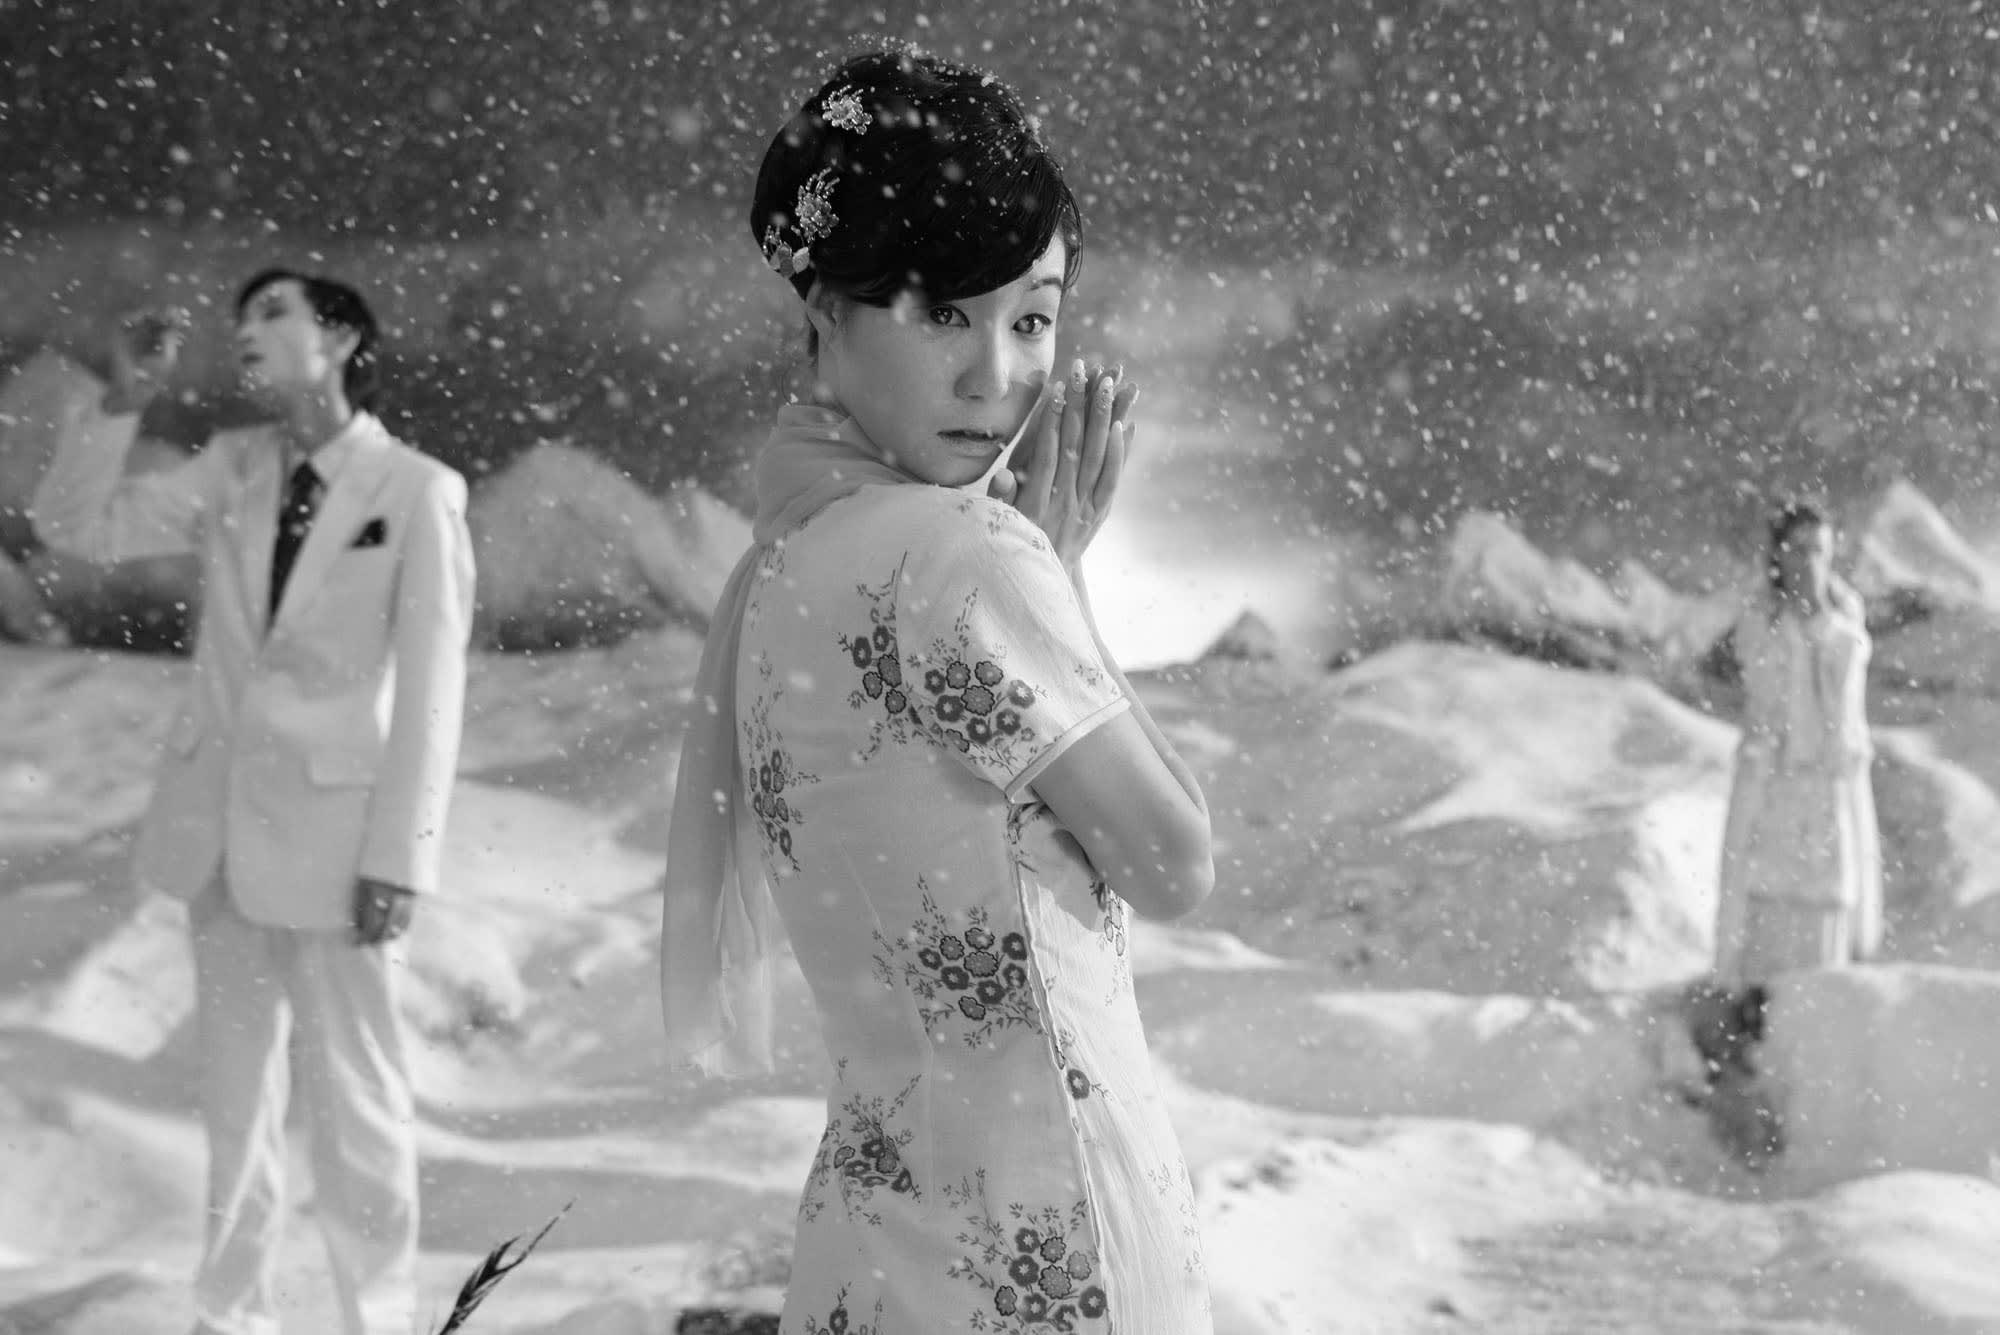 A black and white image of a woman in a floral dress standing in snowfall. A man in a suit stands to her left, while a figure is out of focus to the right.